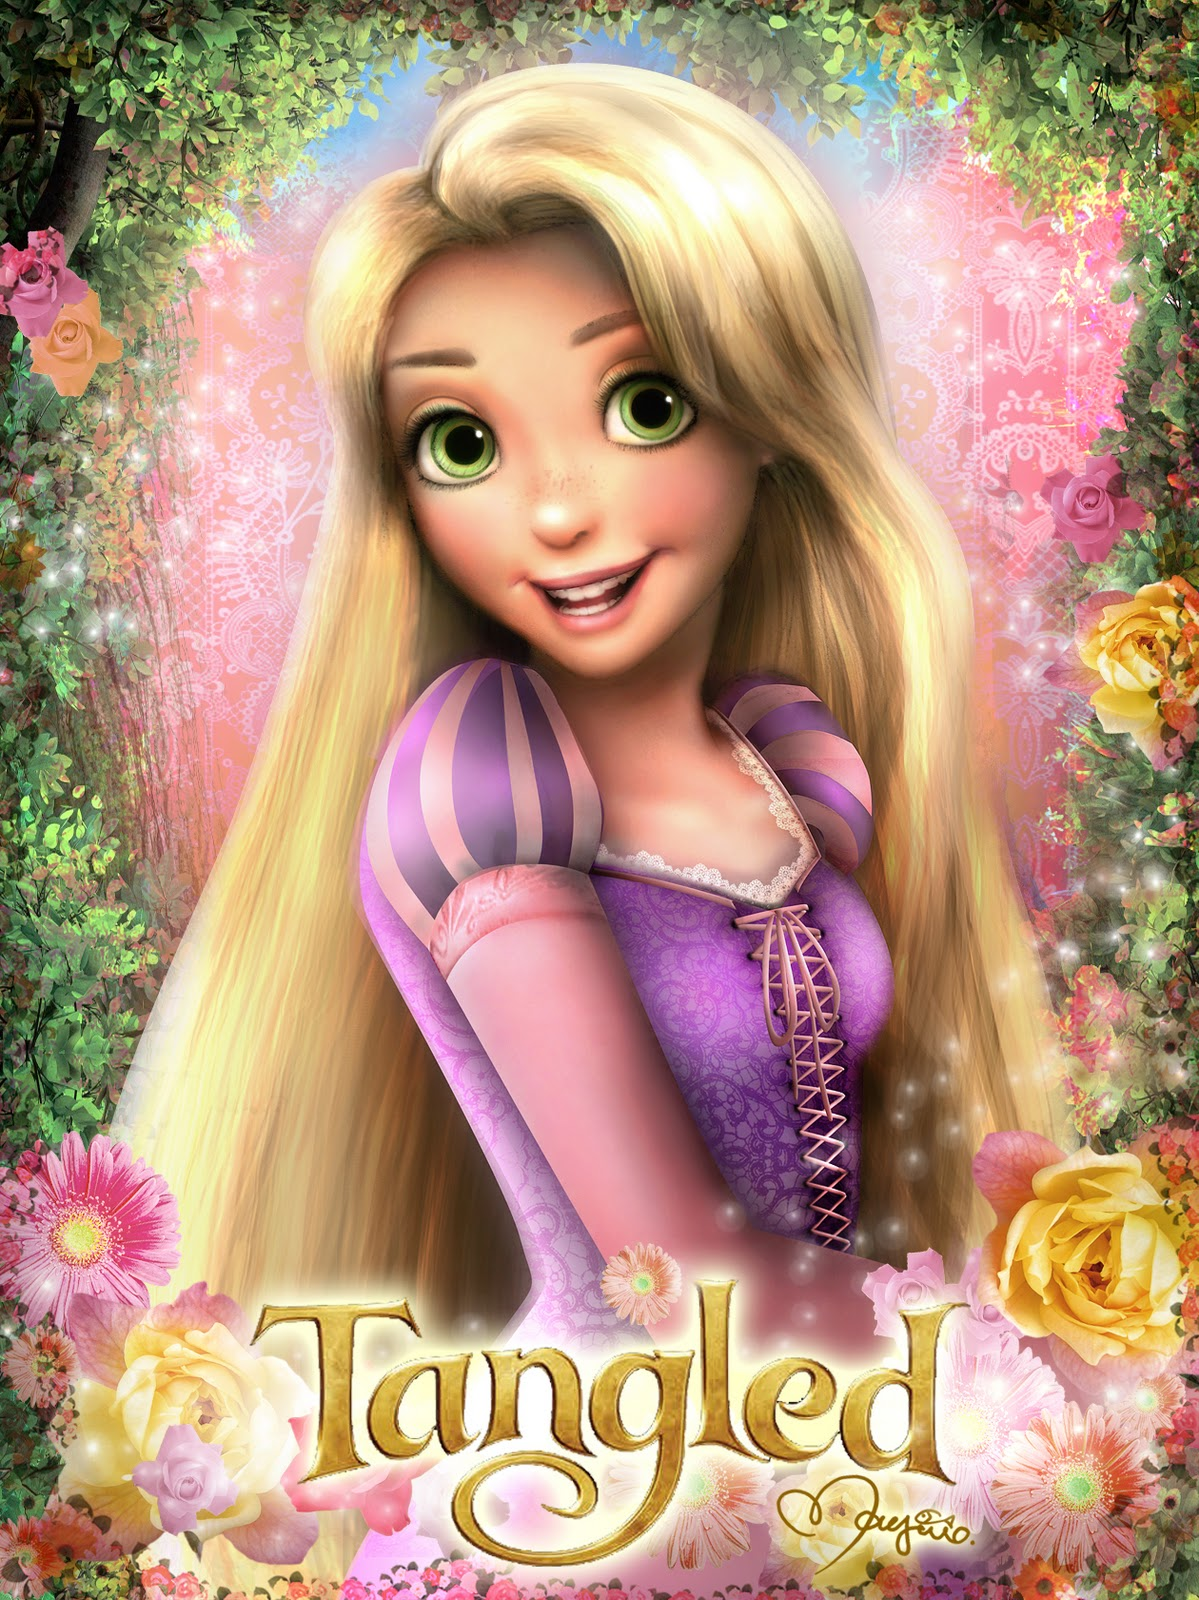 Tangled Images Tangled Hd Wallpaper And Background Photos 35316185